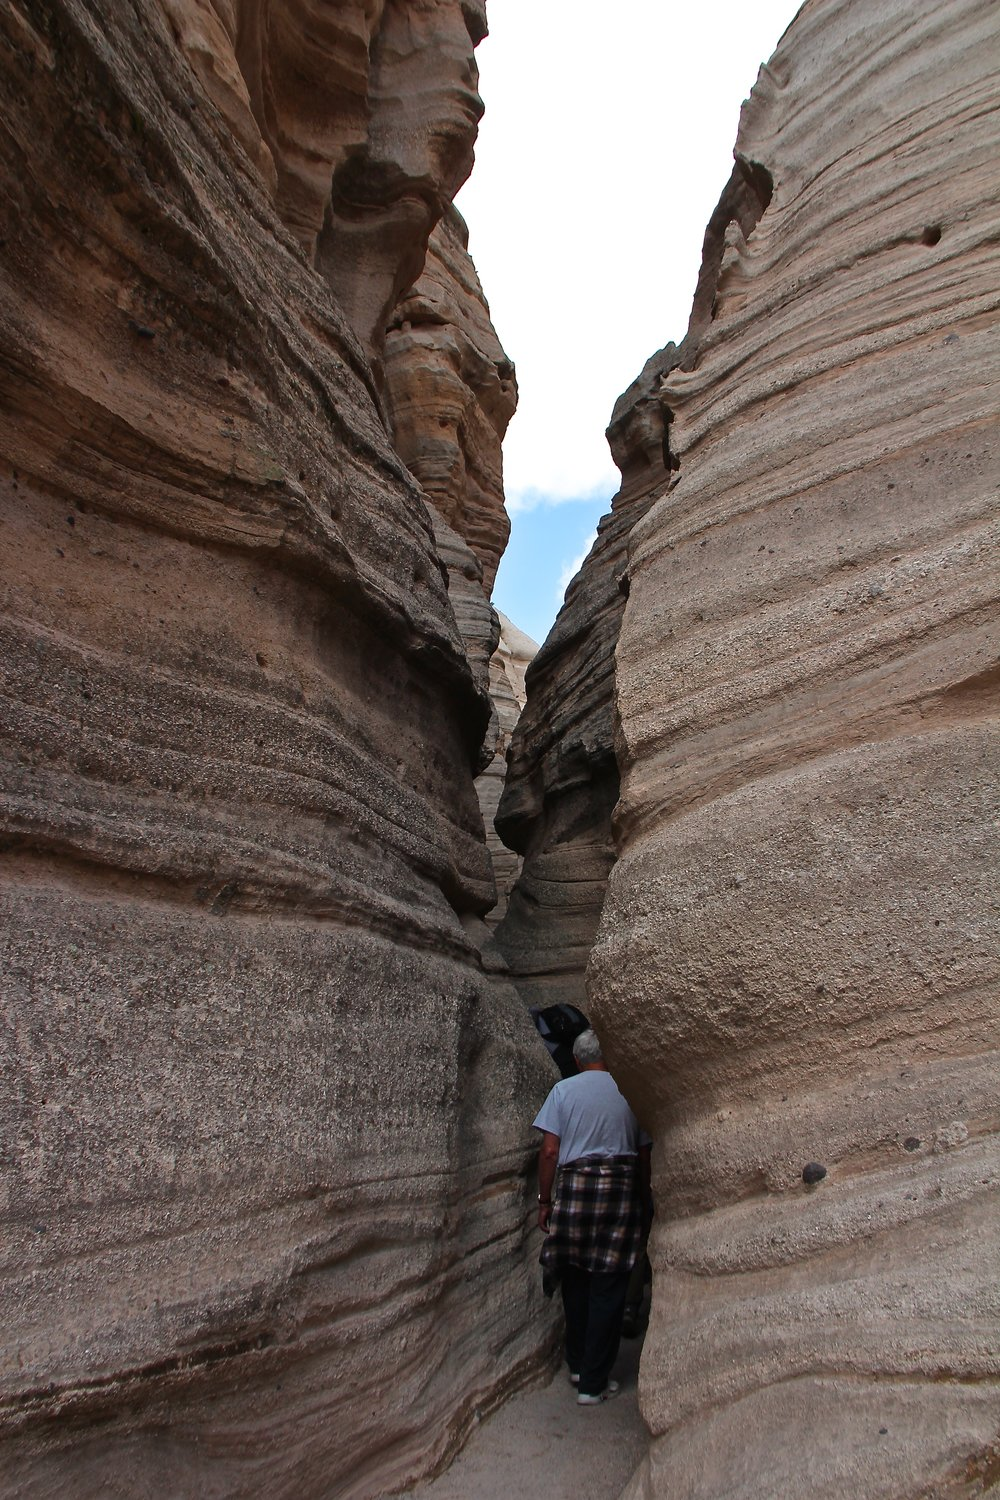 My dad snaking through the slot canyon at Tent Rocks.